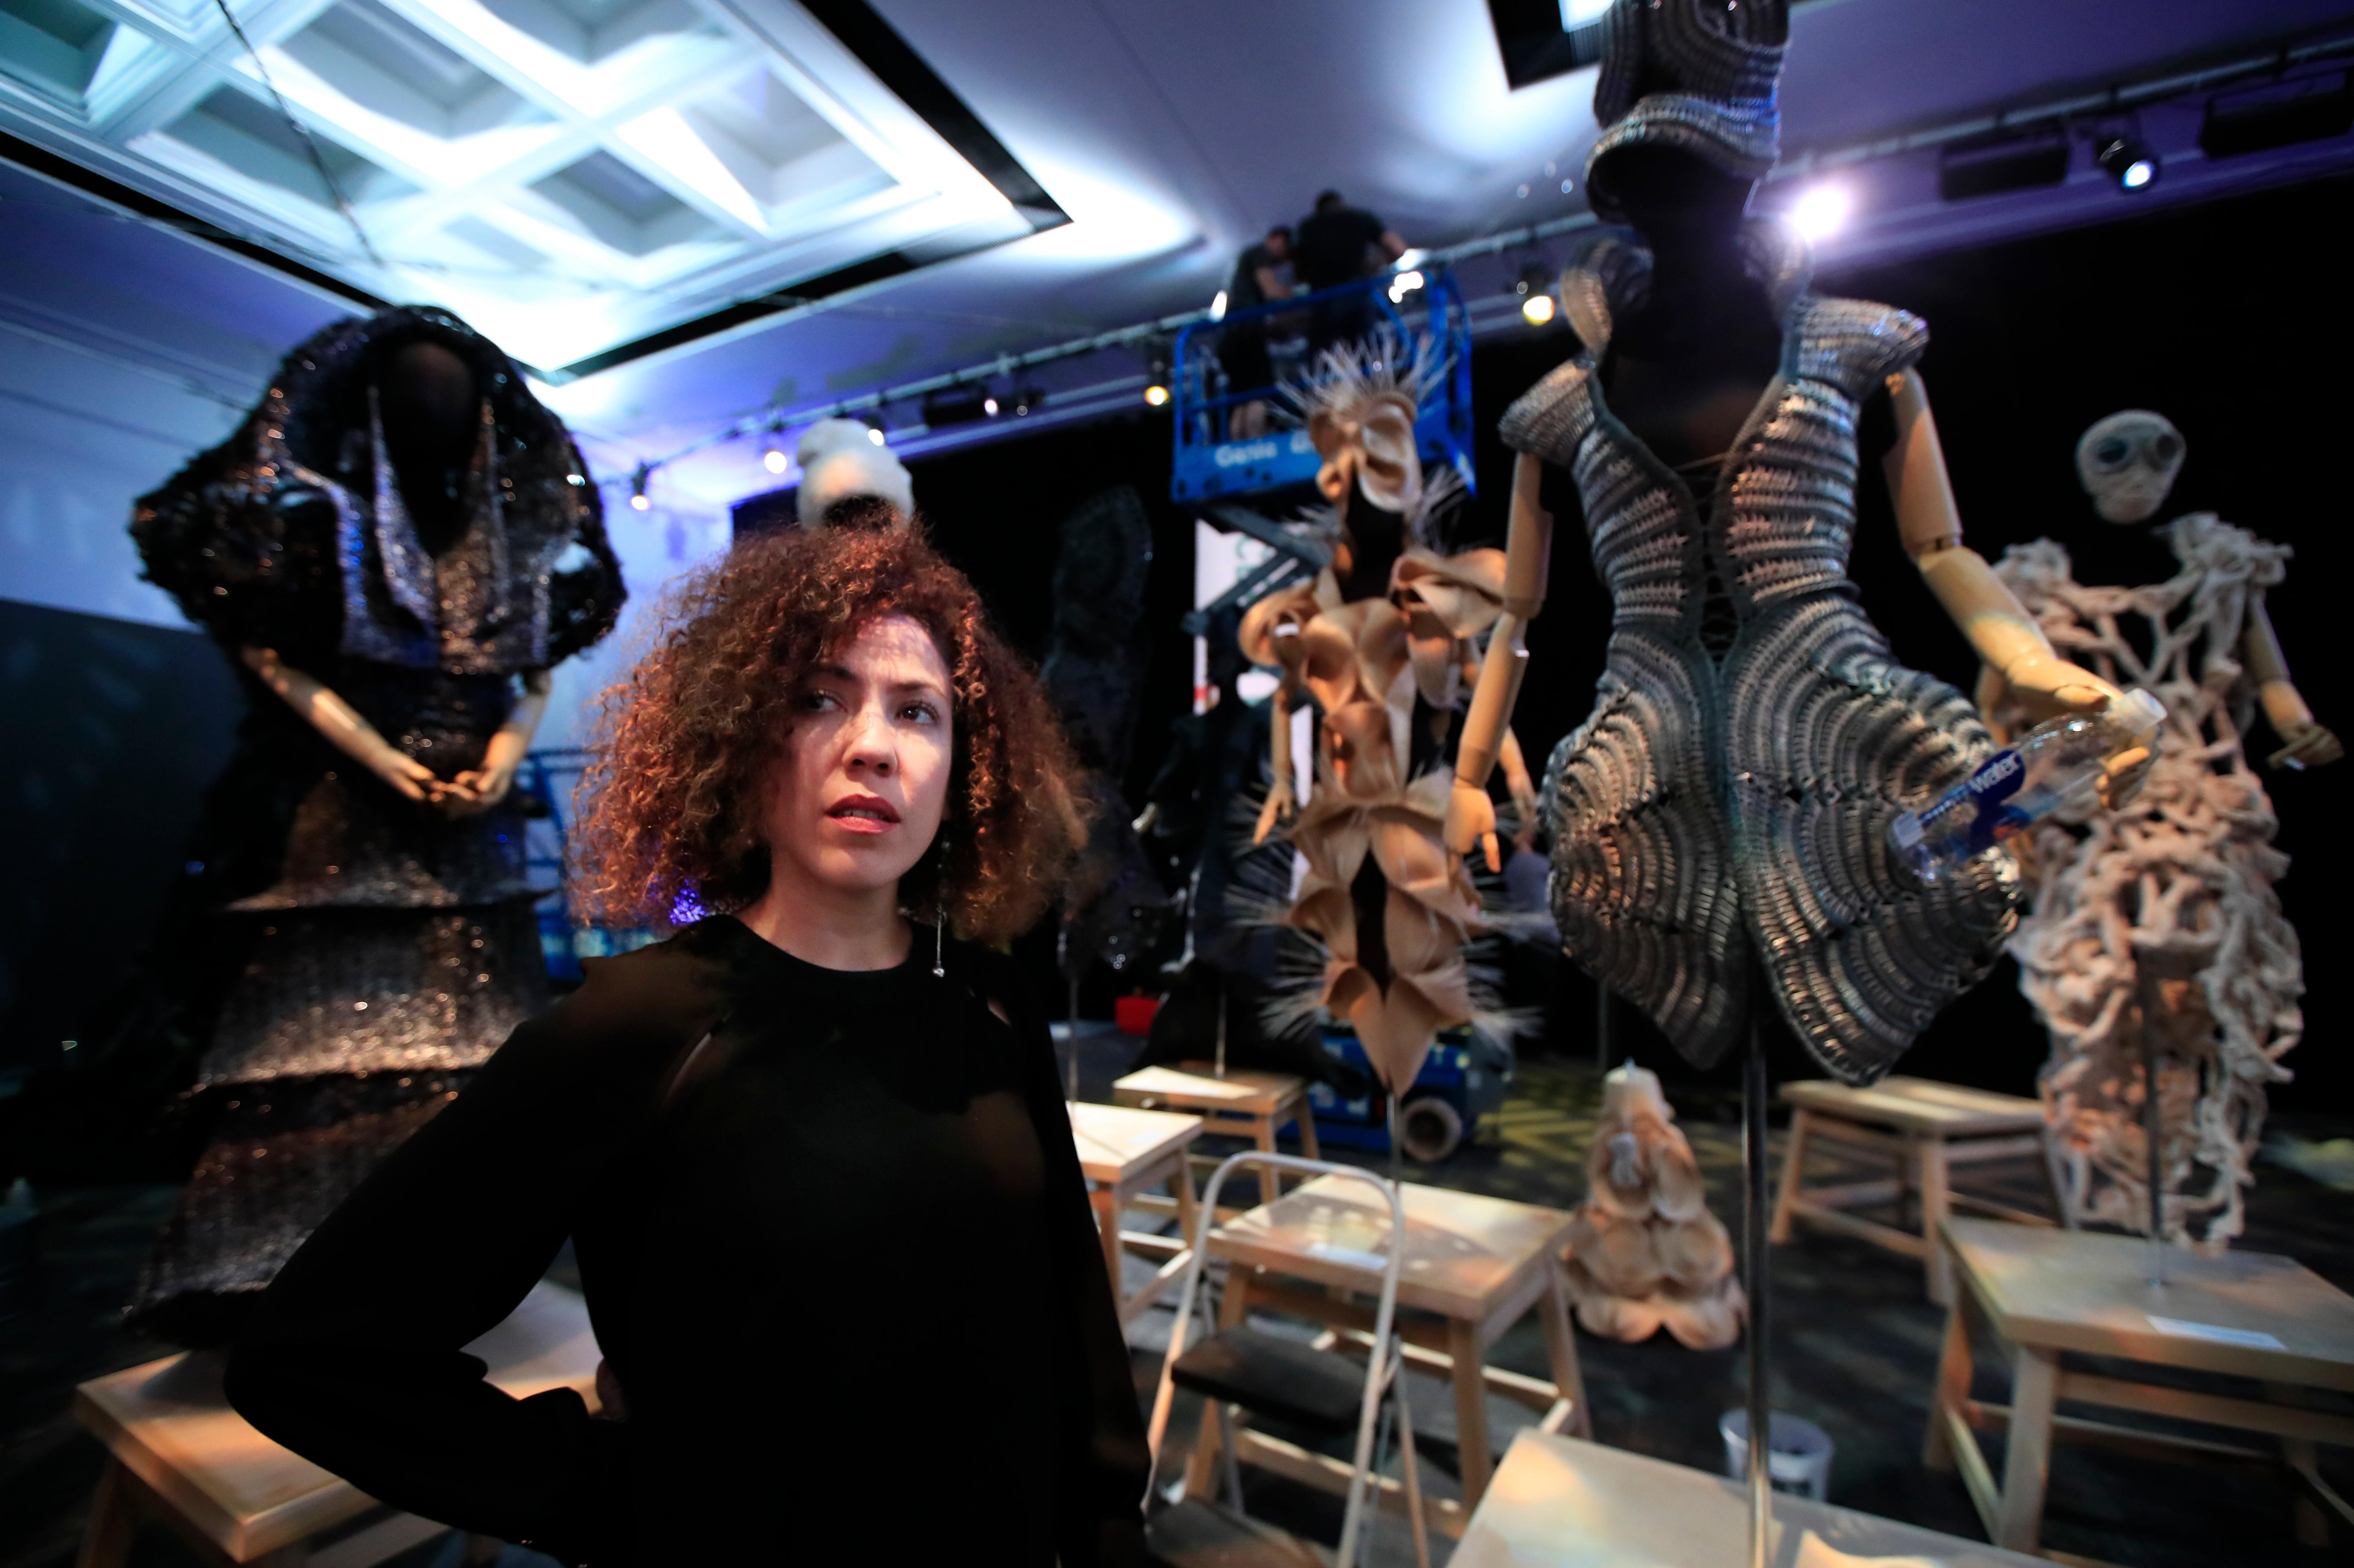 Cuban designer Celia Ledón poses with her fashion creation at the Kennedy Center in Washington, Tuesday, May 8, 2018. Renewed tensions between the U.S. and Cuba did not stop the John F. Kennedy Center for the Performing Arts from shining a spotlight on the island's rich cultural heritage during what's being billed as the largest Cuban arts festival ever held in the United States.  (AP Photo/Manuel Balce Ceneta)